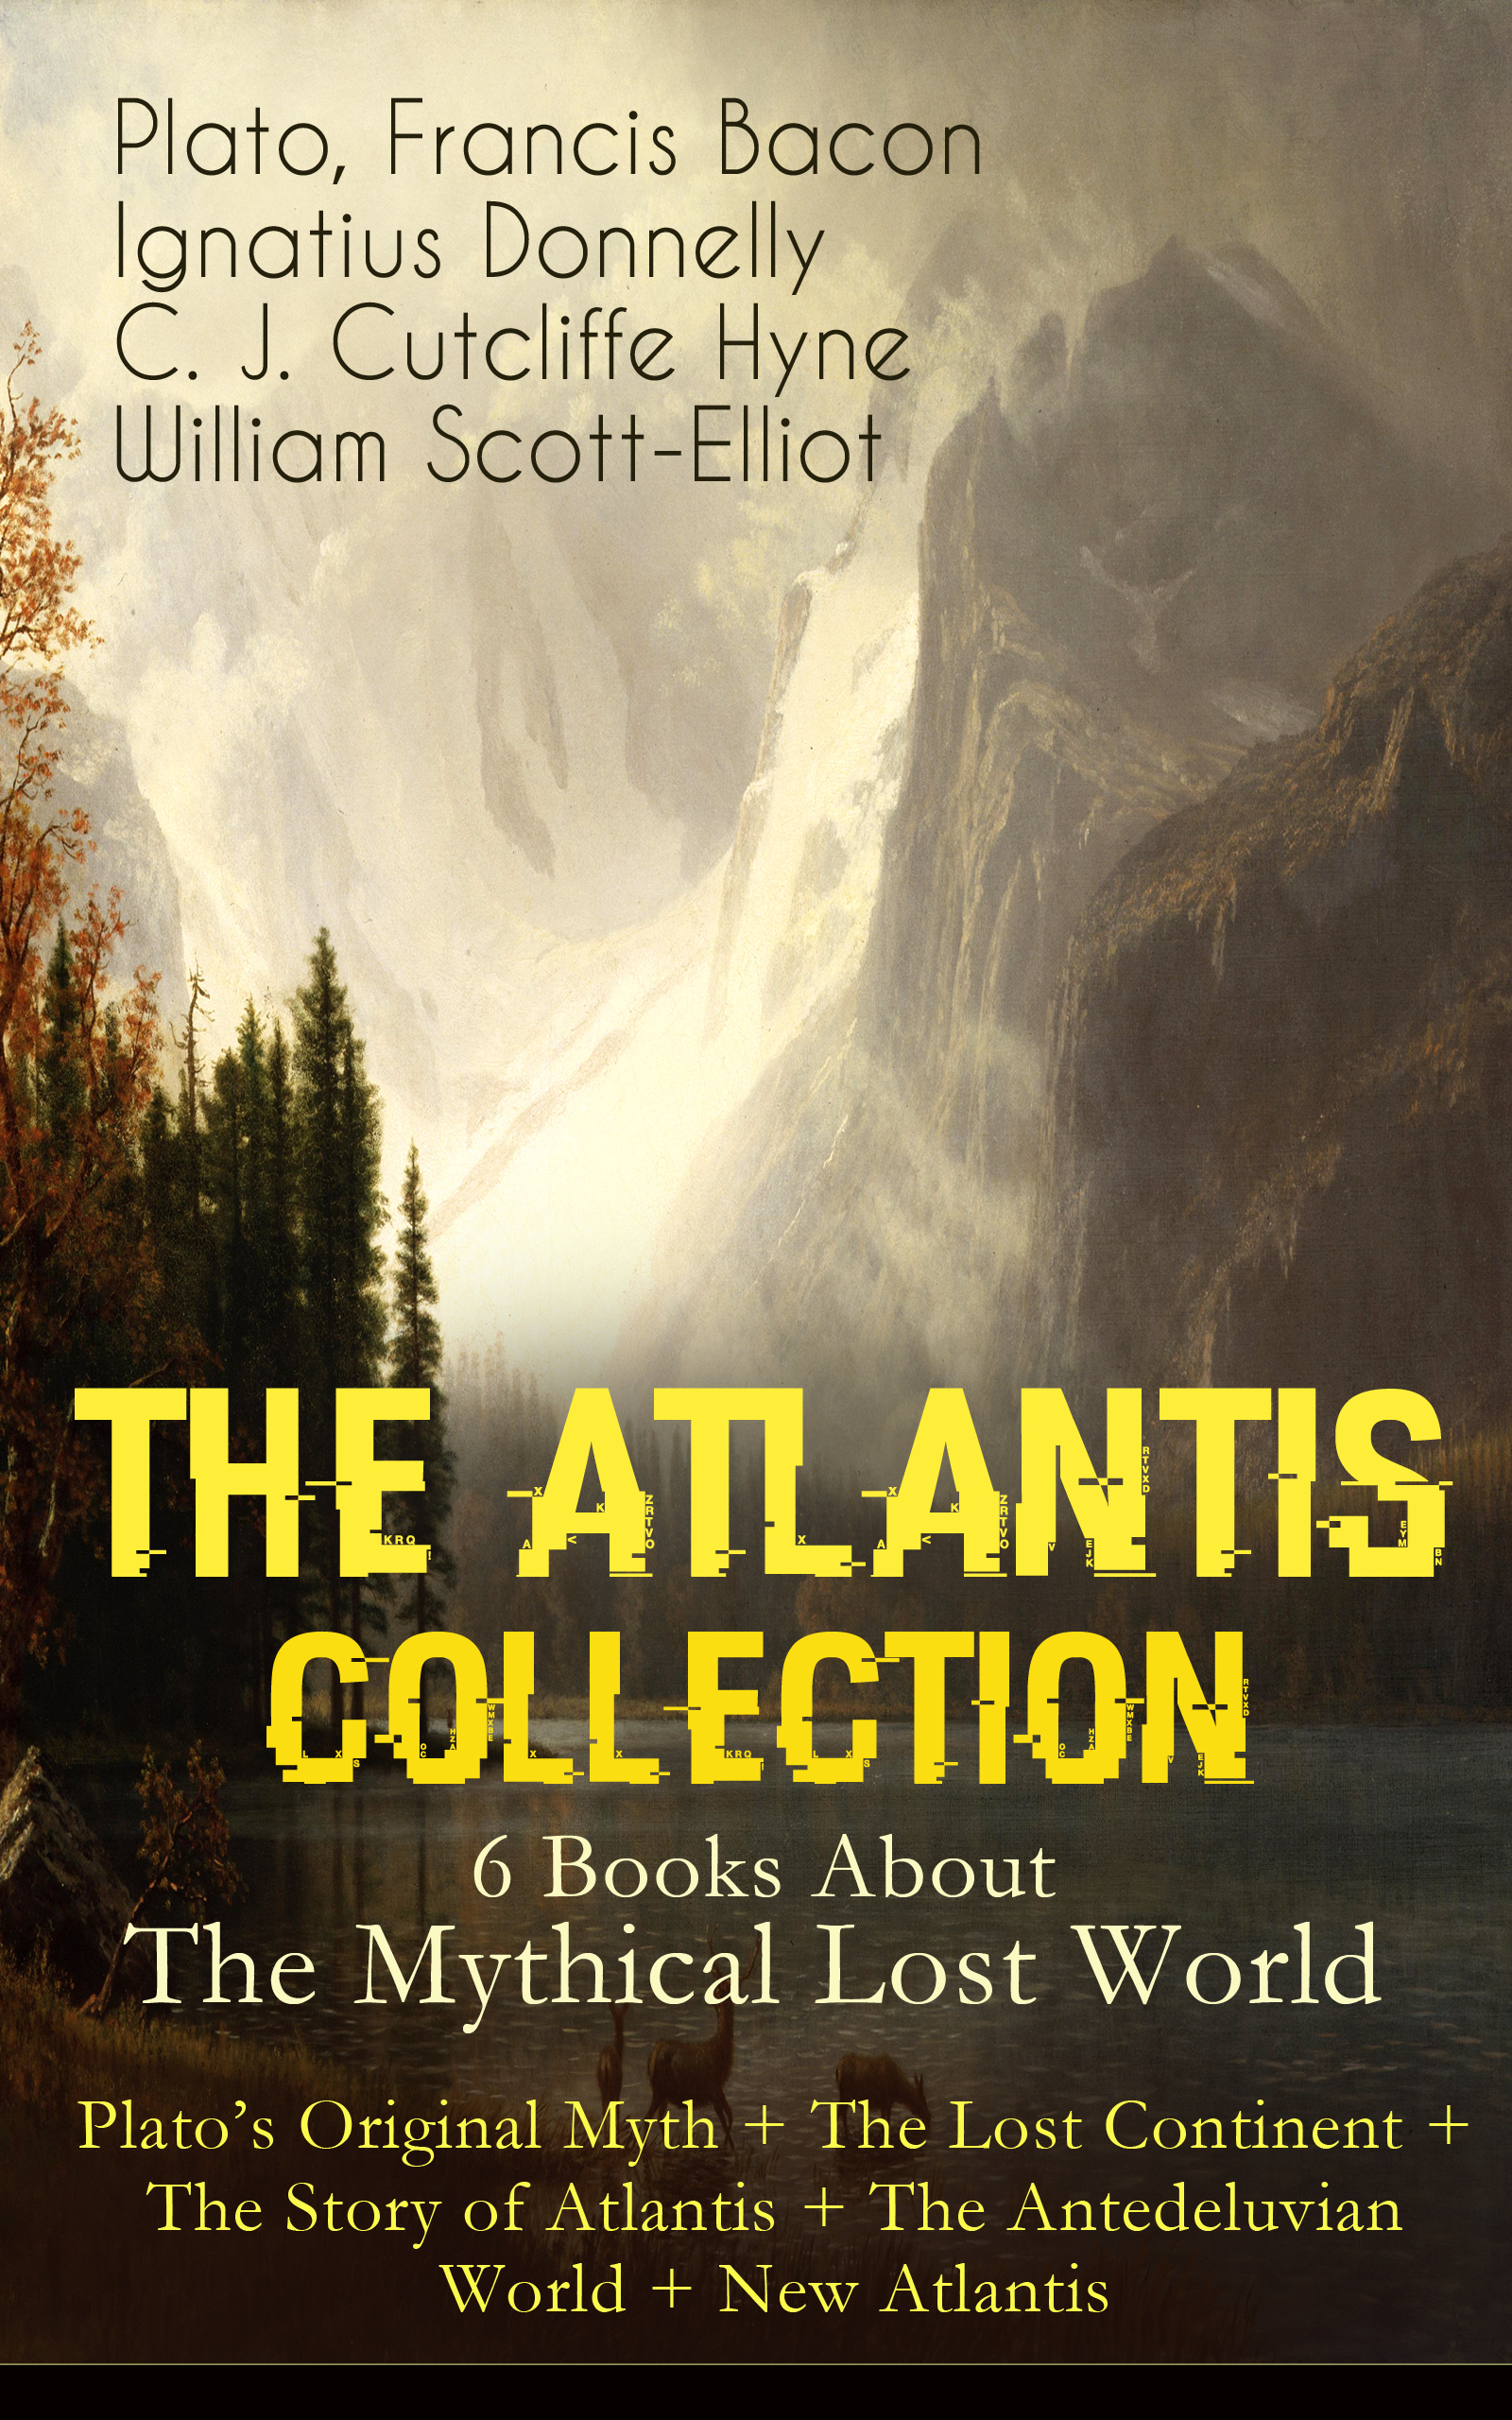 Plato THE ATLANTIS COLLECTION - 6 Books About The Mythical Lost World: Plato's Original Myth + The Lost Continent + The Story of Atlantis + The Antedeluvian World + New Atlantis the world